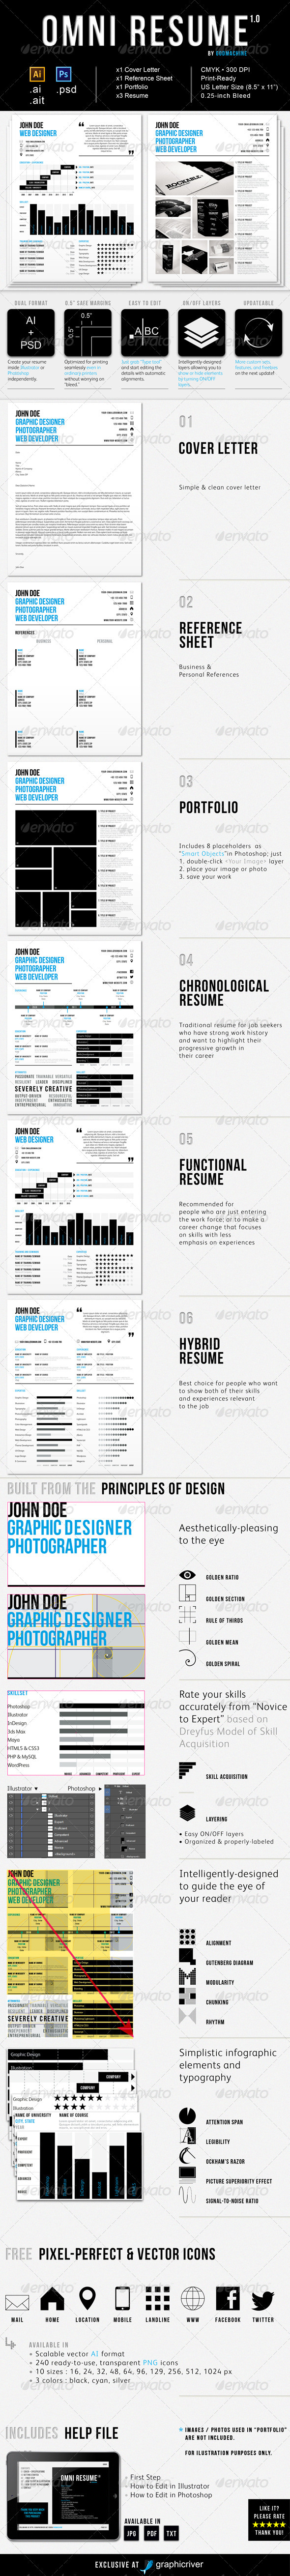 GraphicRiver Omni Resume 3719044